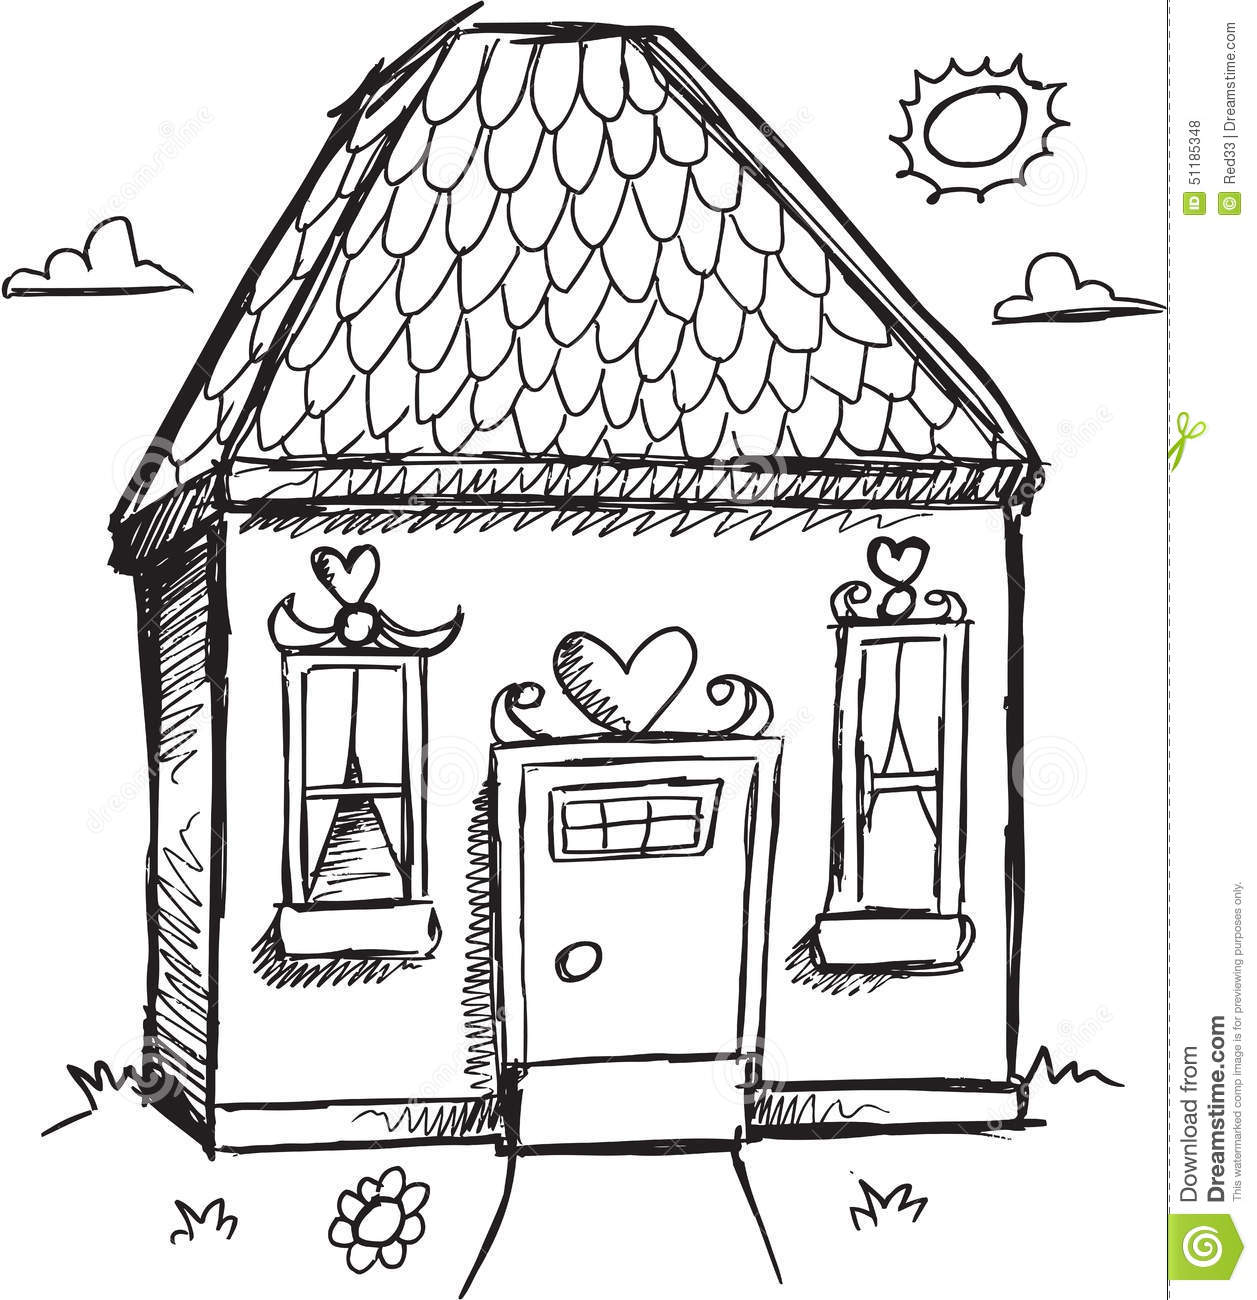 Doodle House Vector Stock Vector Illustration Of Doodle